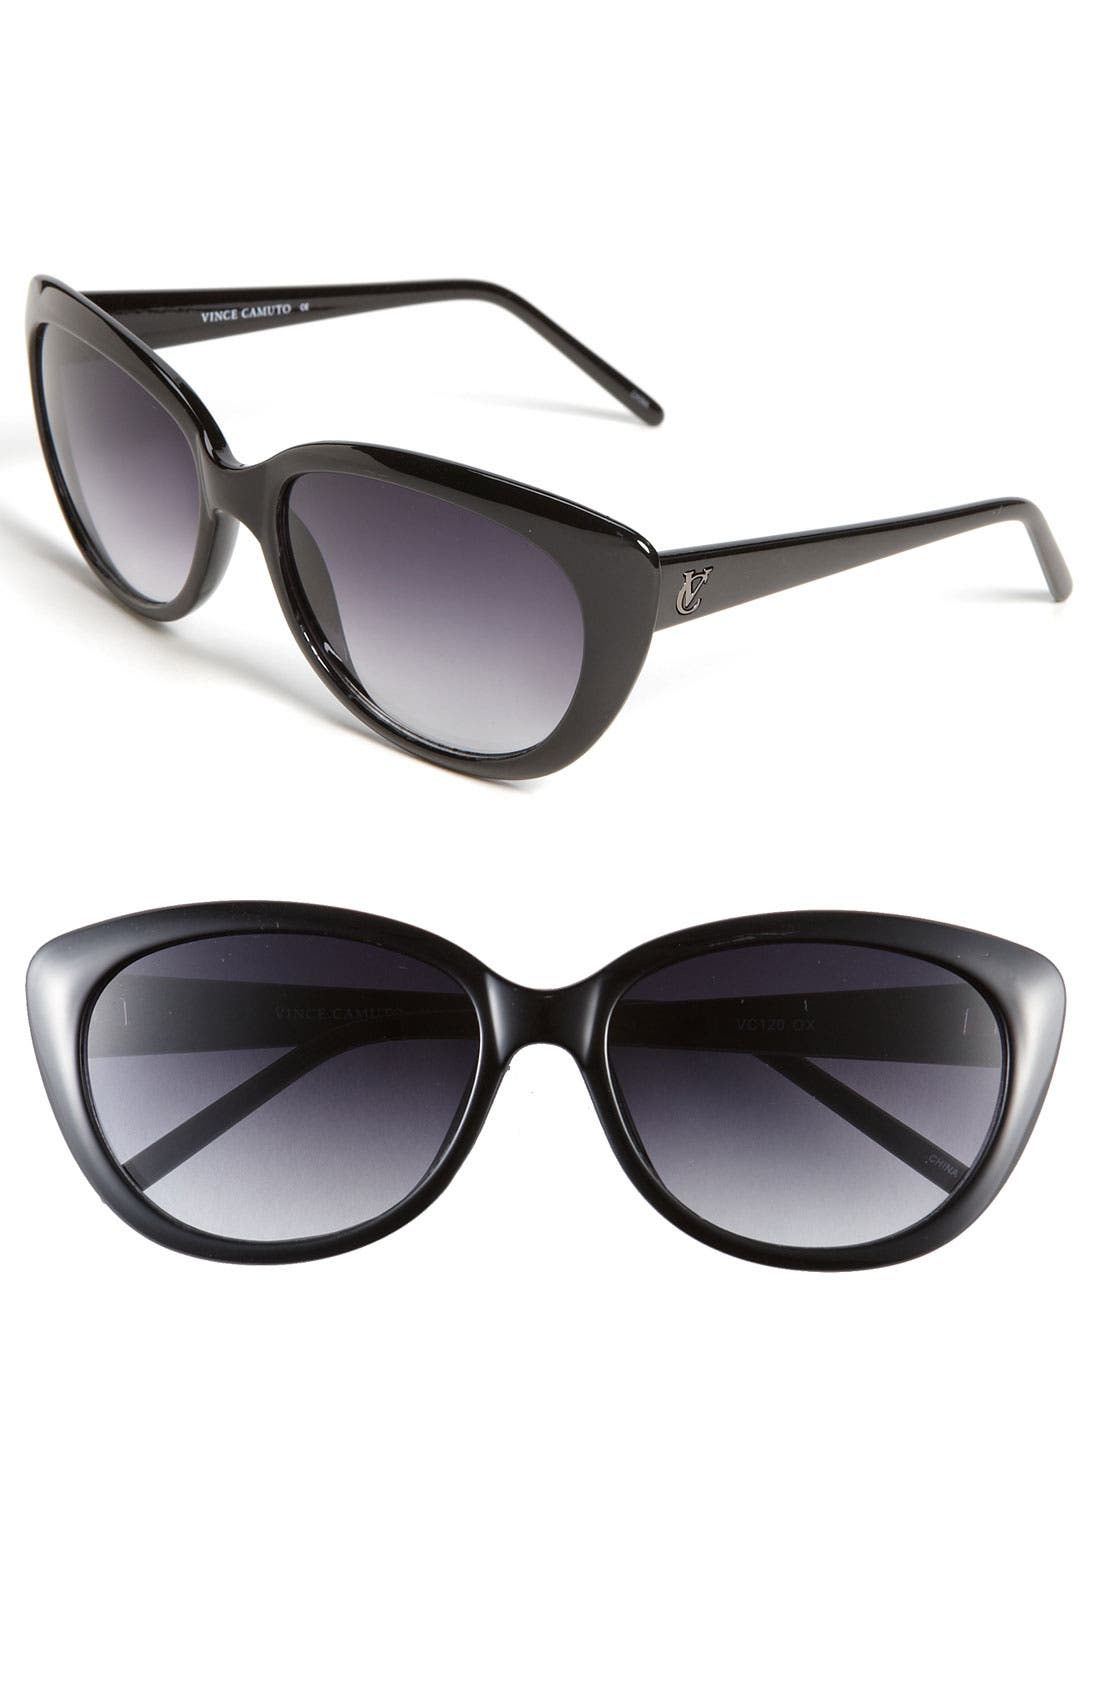 Main Image - Vince Camuto 55mm Plastic Cat's Eye Sunglasses